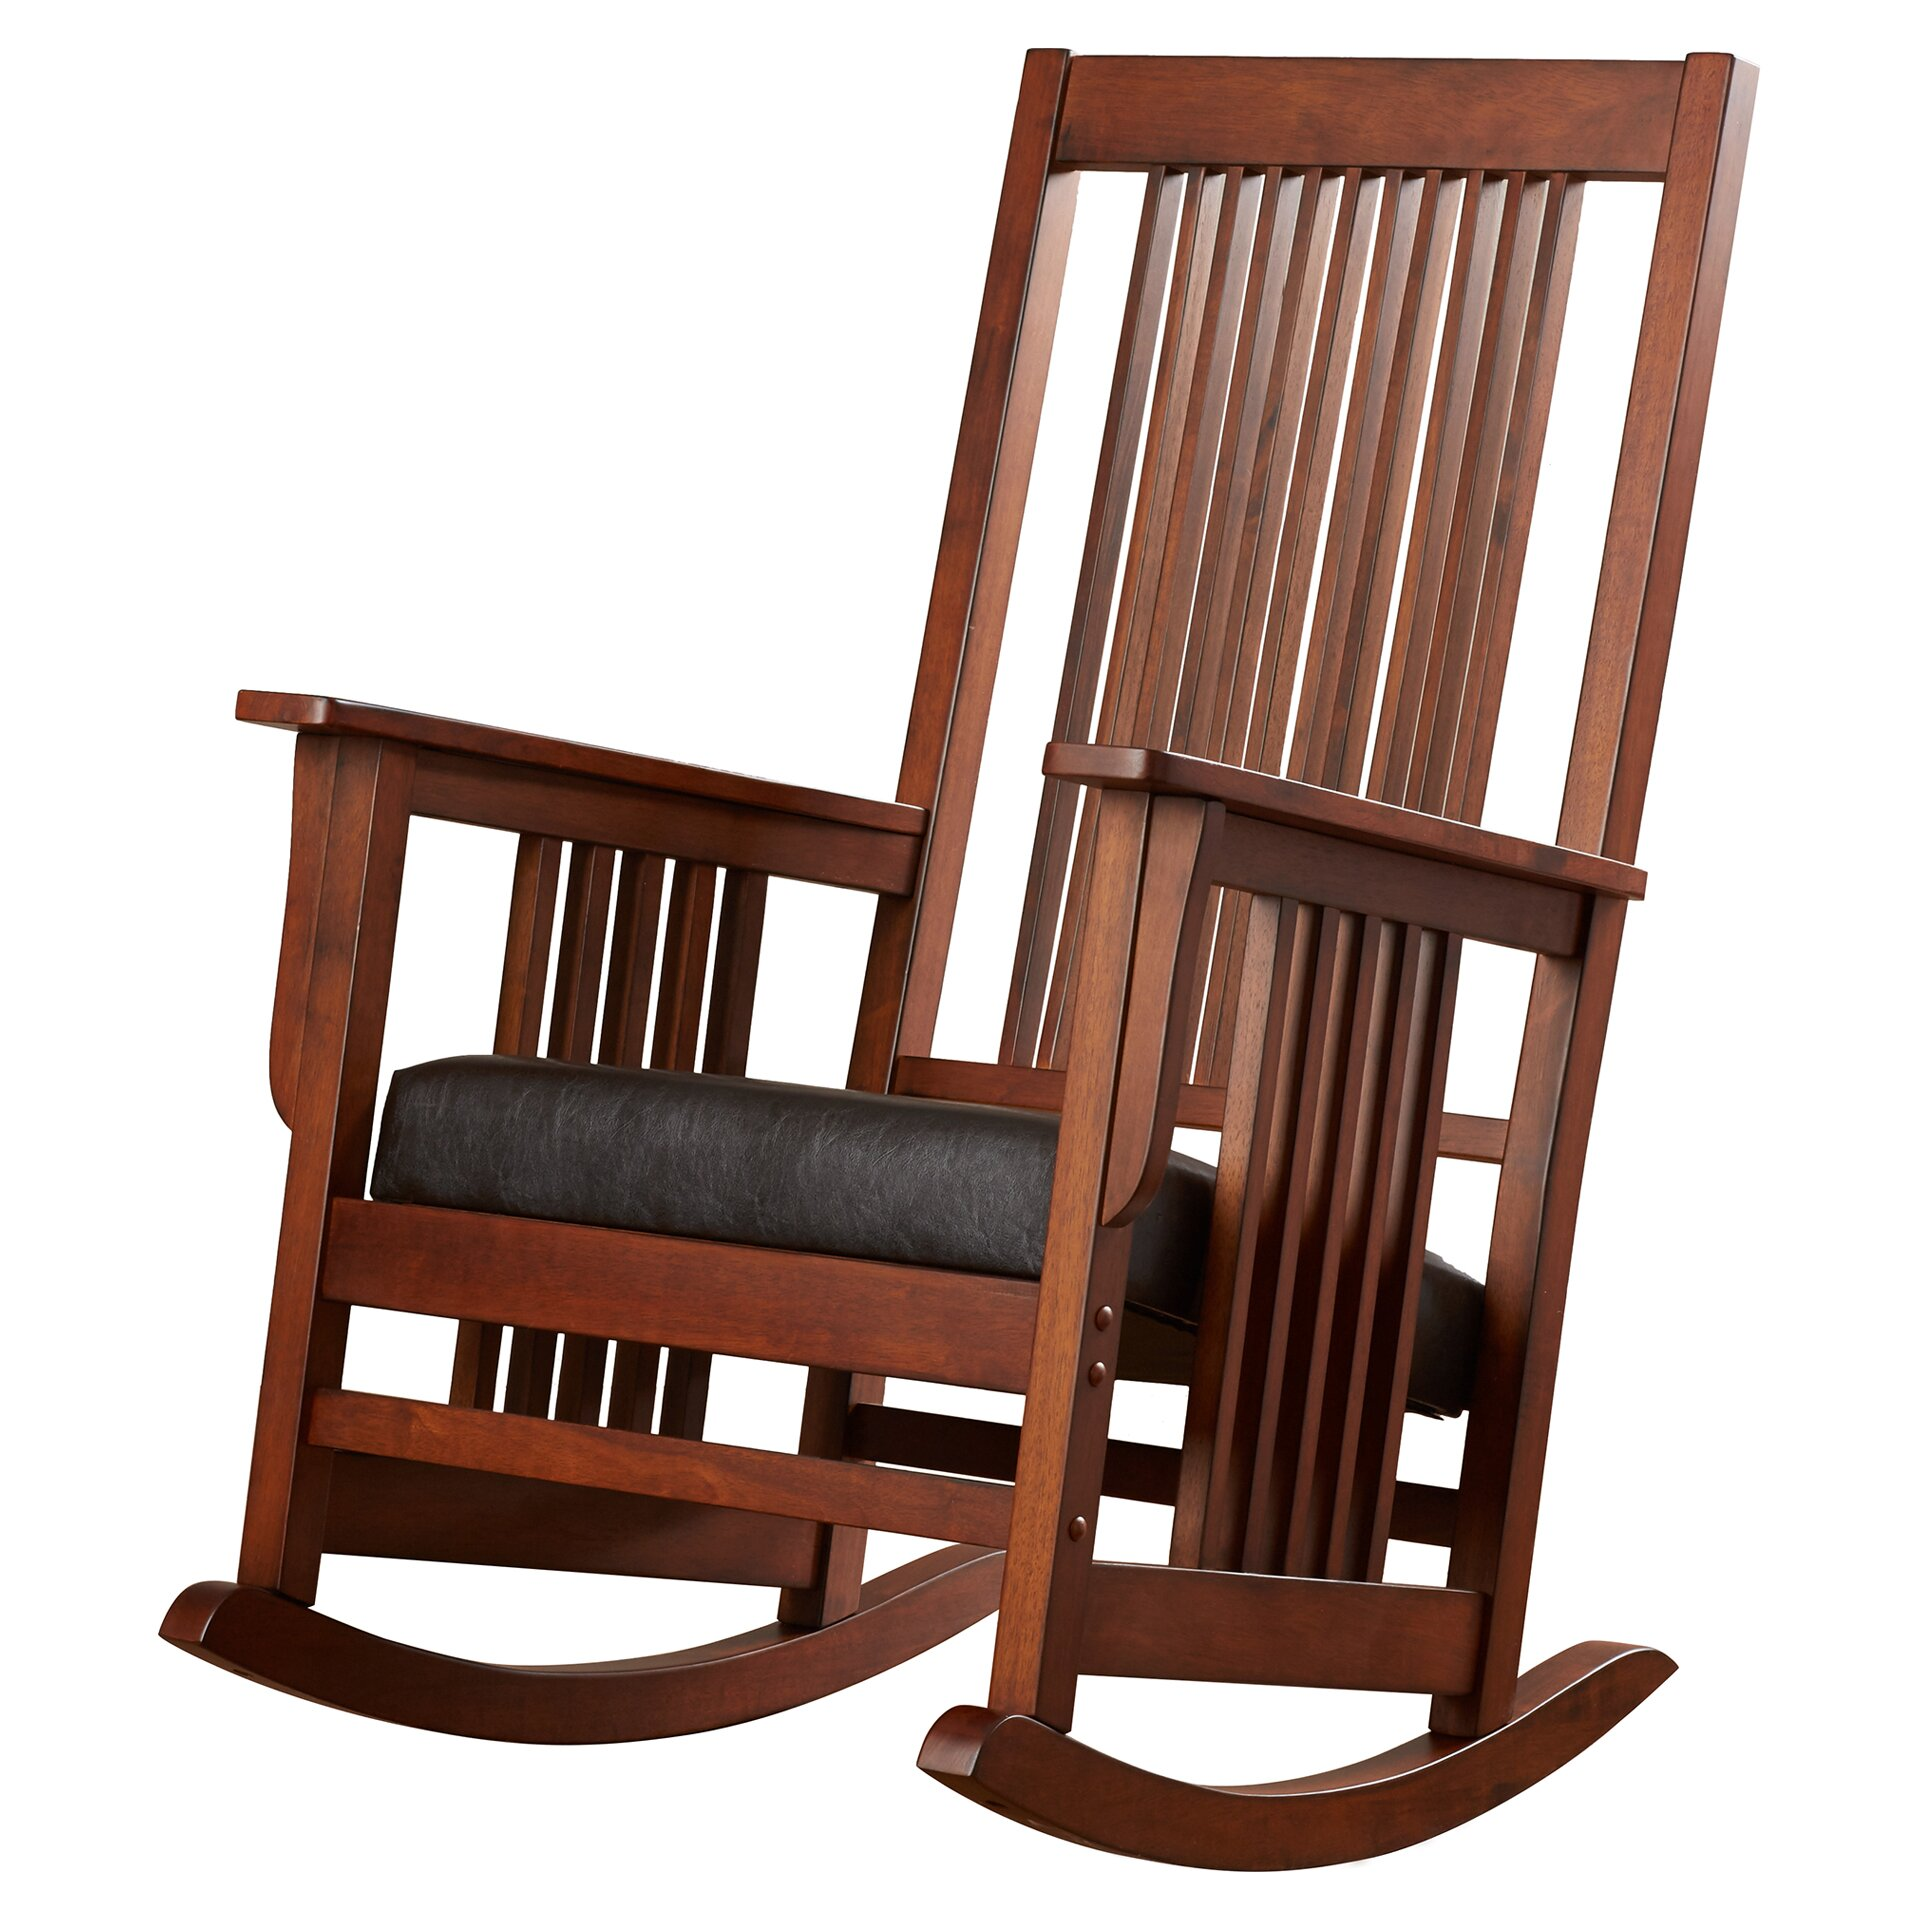 Darby home co matilda rocking chair reviews wayfair for Rocking chair